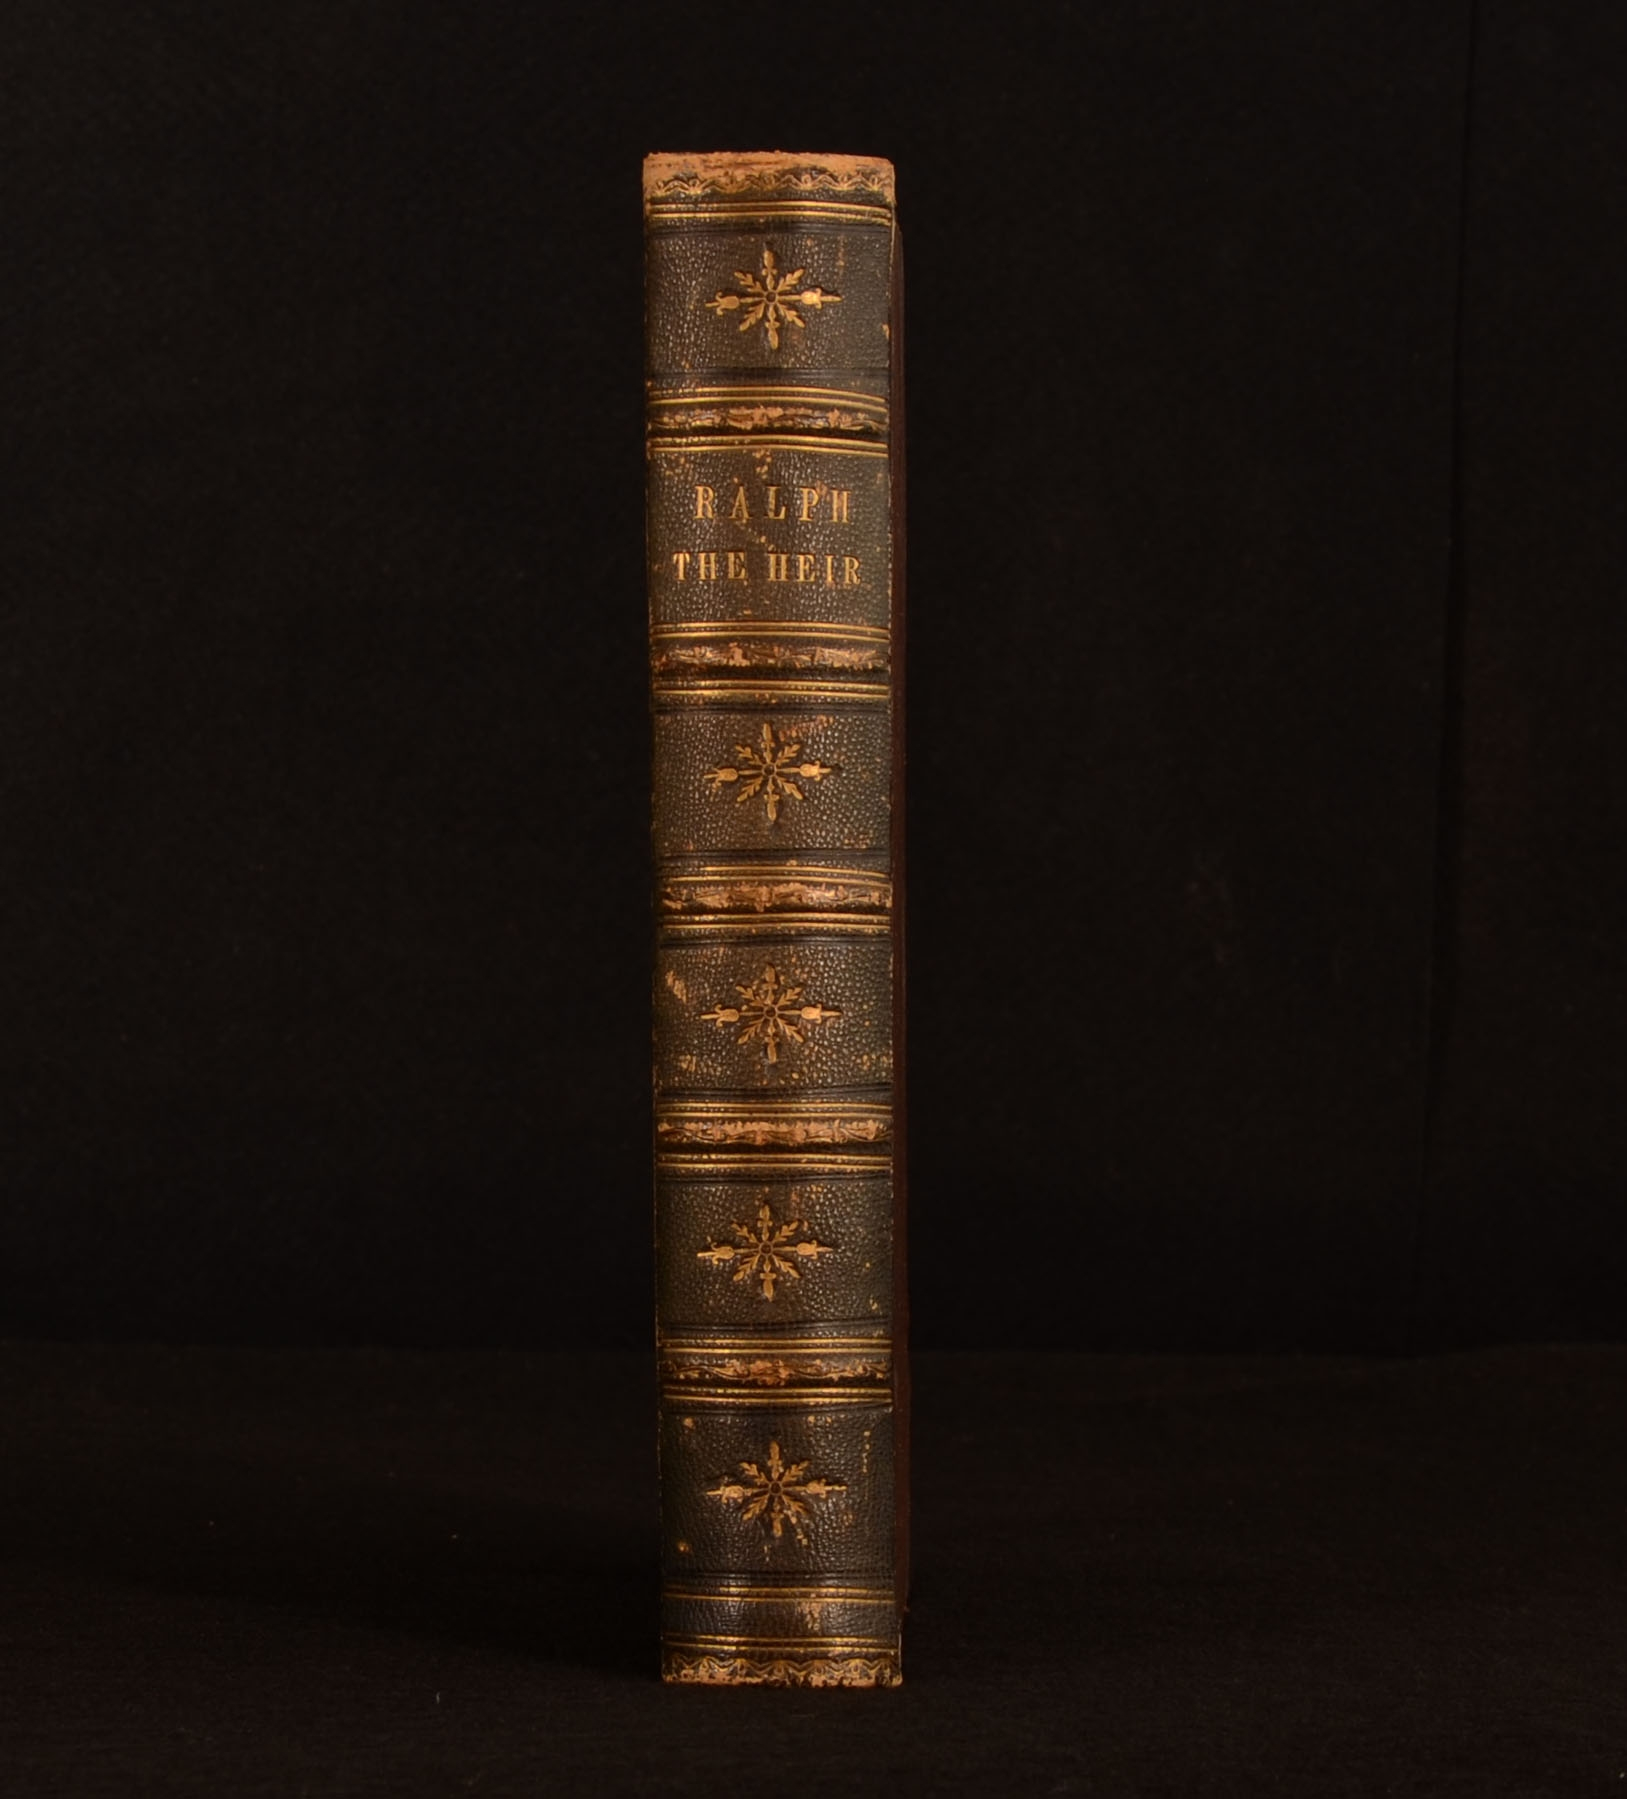 1871 Ralph The Heir Anthony Trollope F. A. Fraser